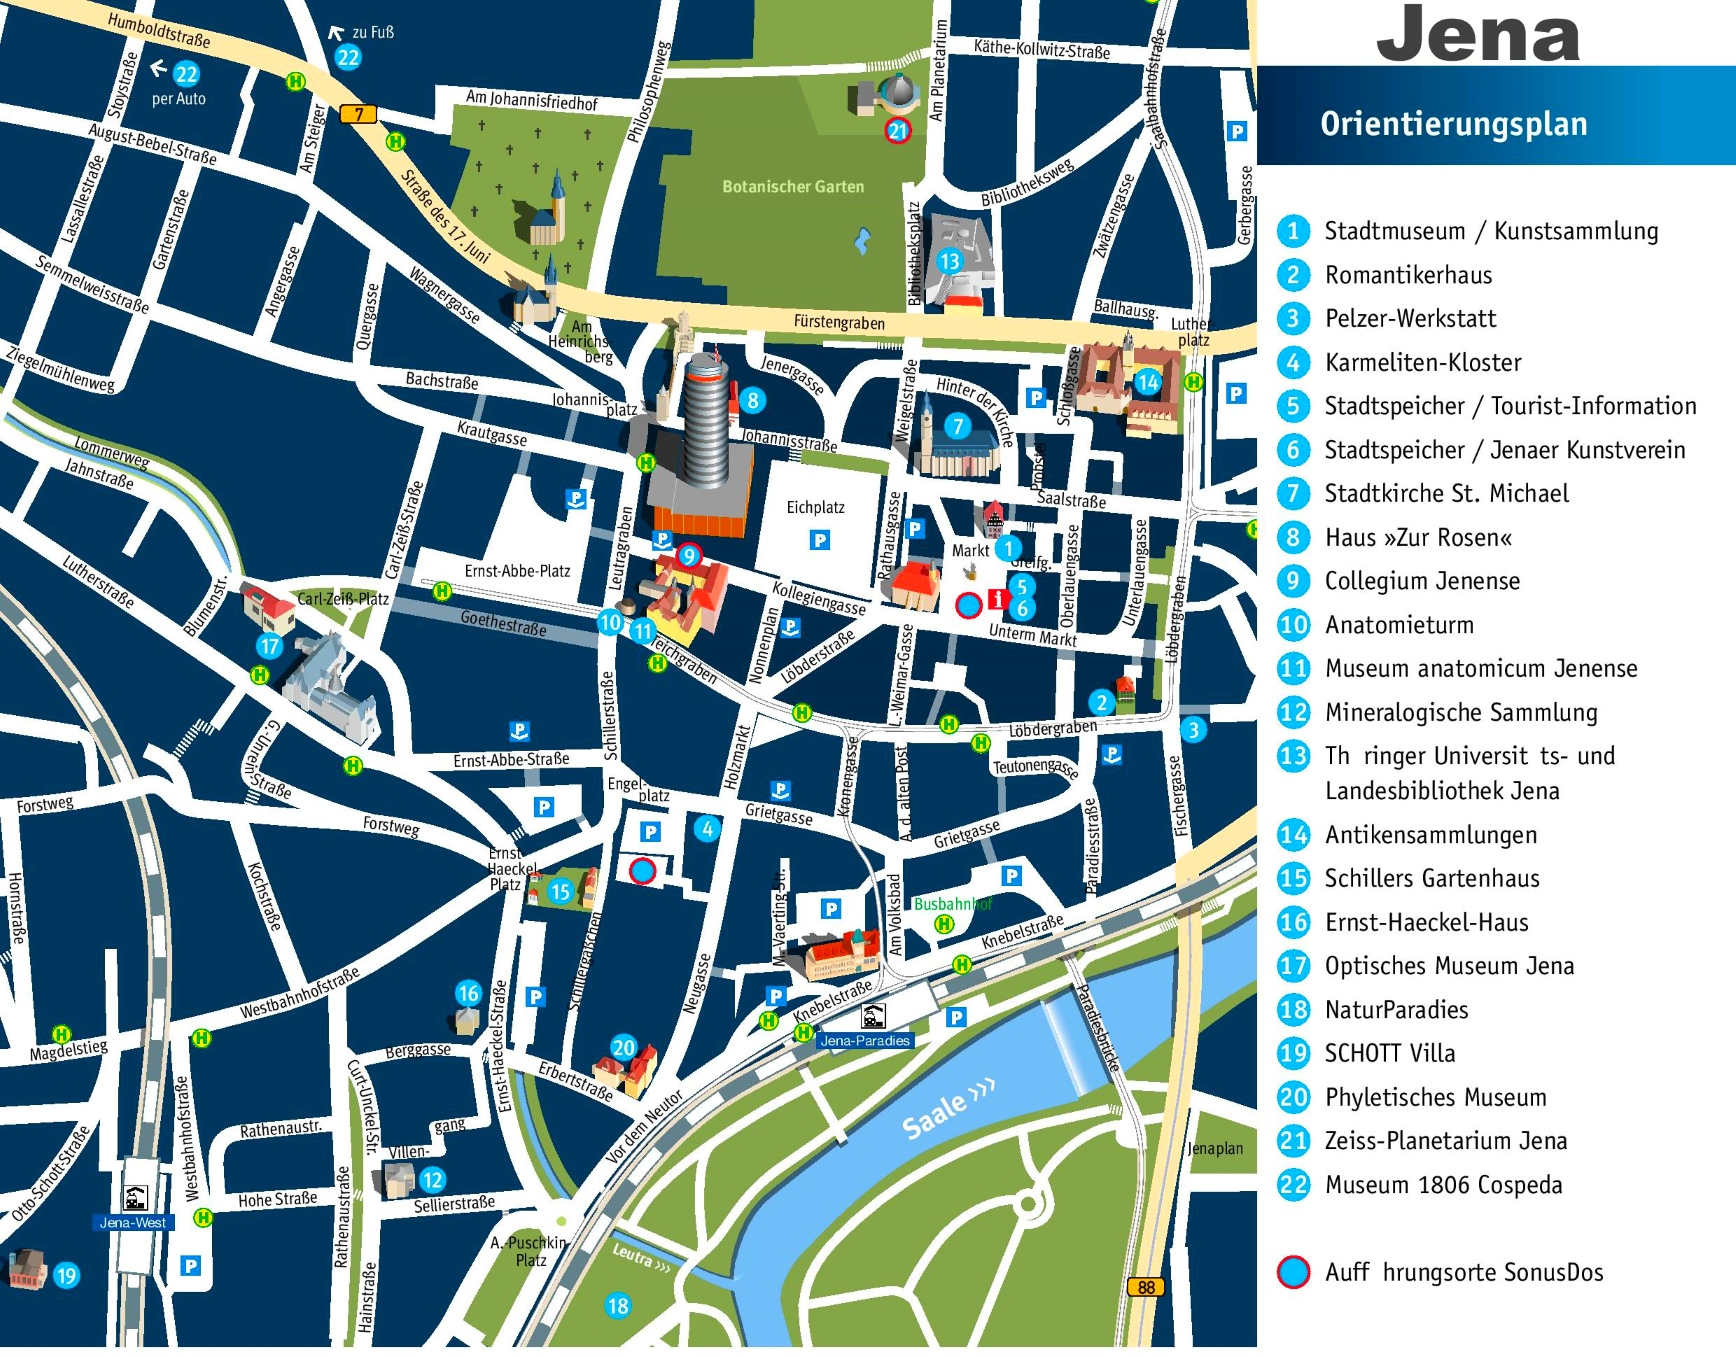 Jena city center map